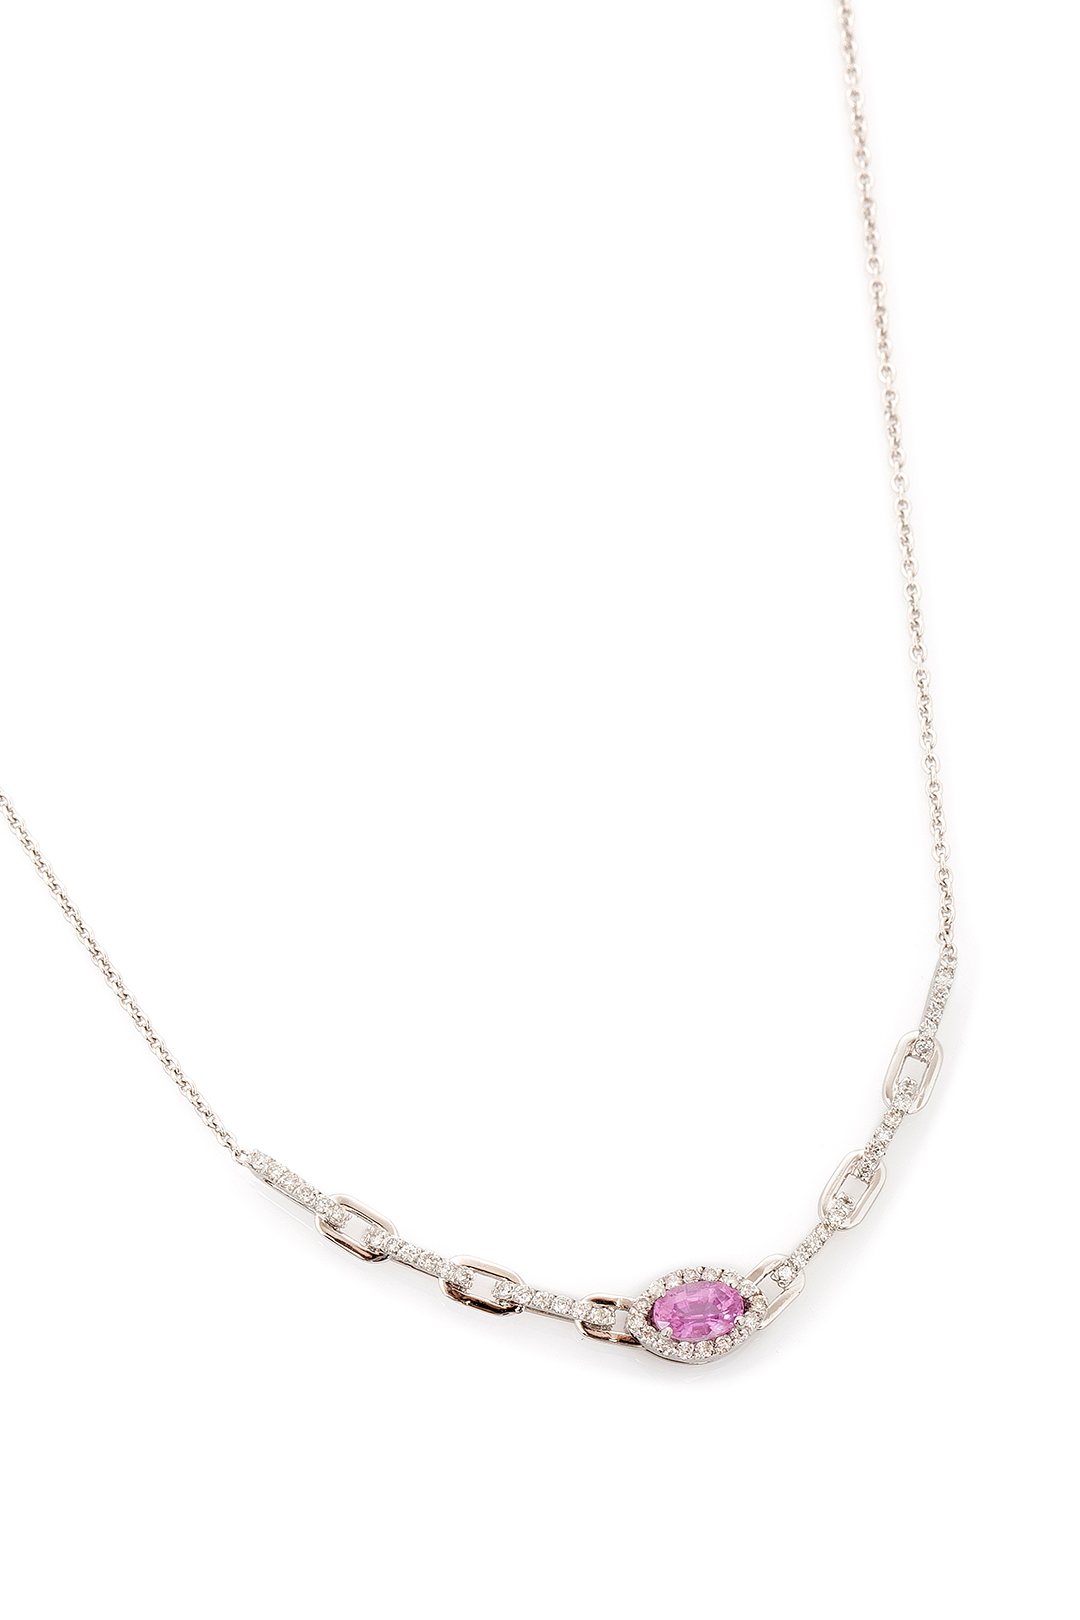 PINK TOPAZ AND DIAMOND NECKLACE